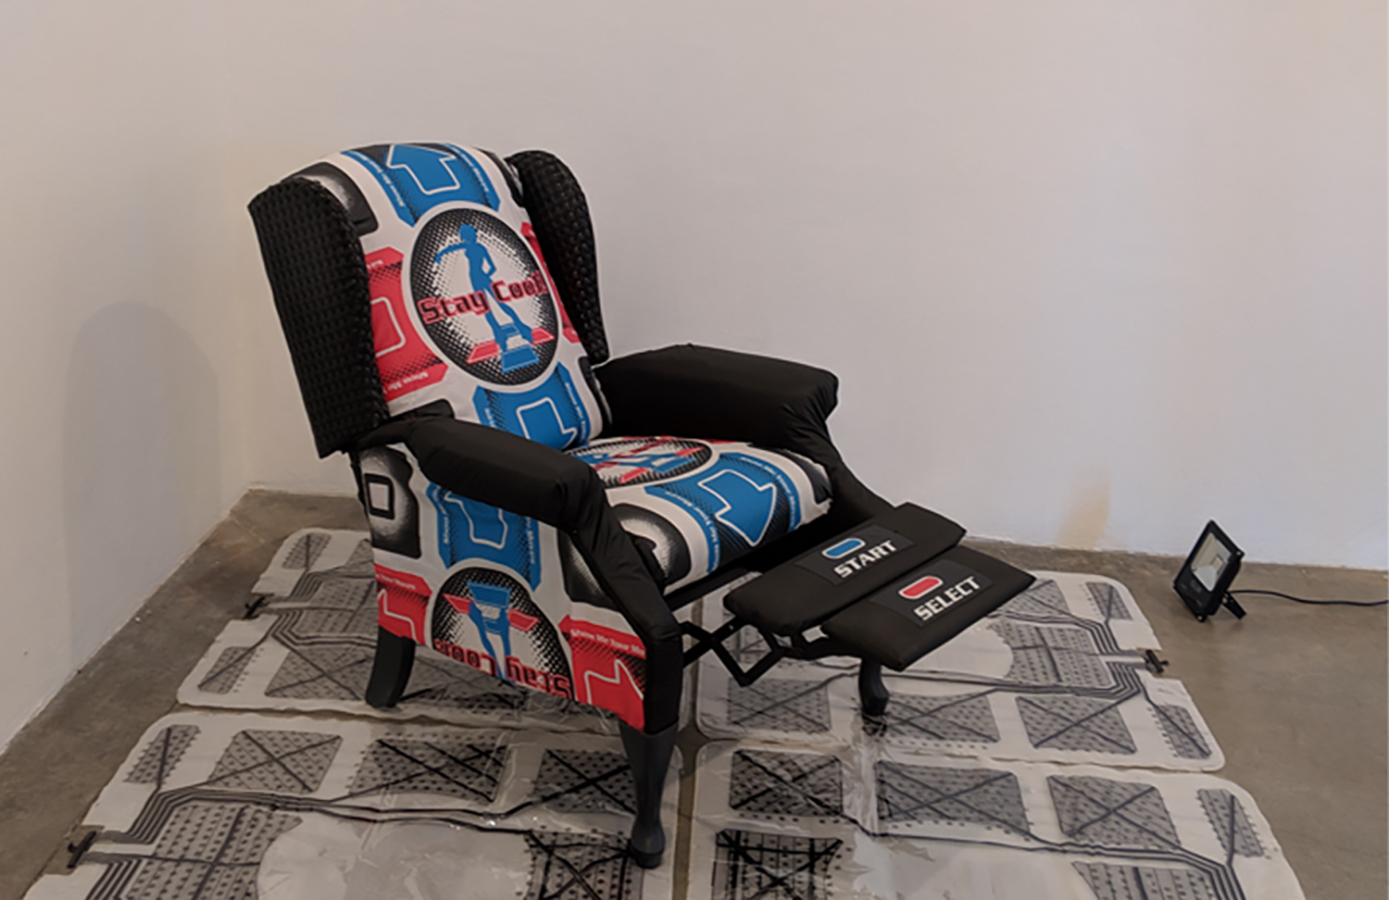 Thrifted recliner reupholstered with Dance Dance Revolution dance mats, and stretch Pleather fabric.